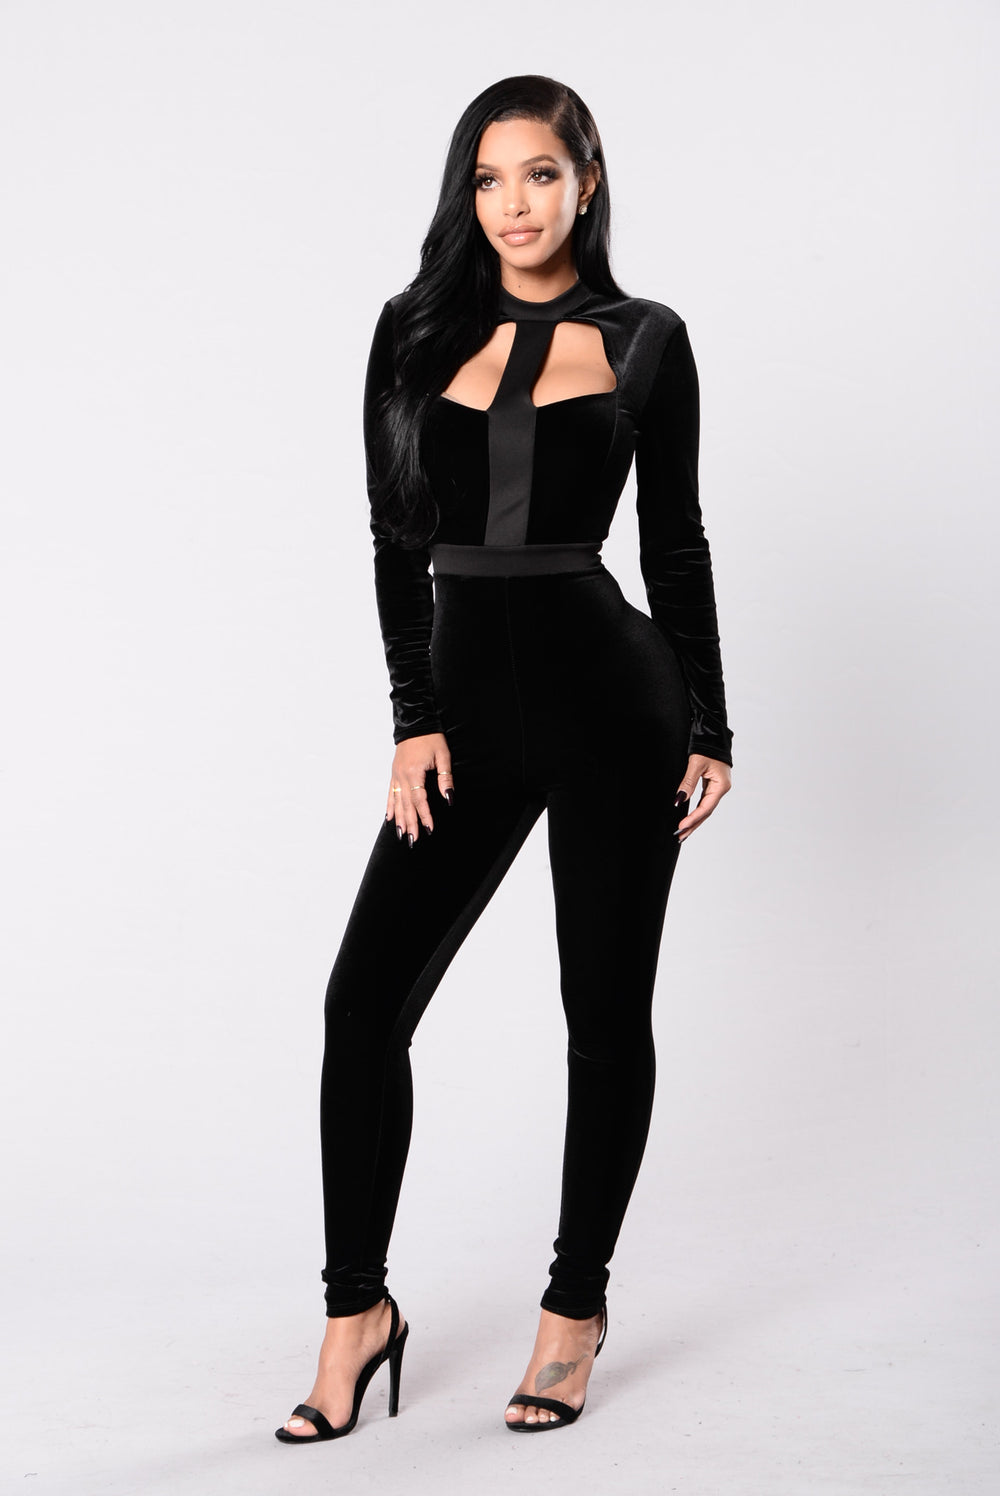 Mean So Much Jumpsuit - Black